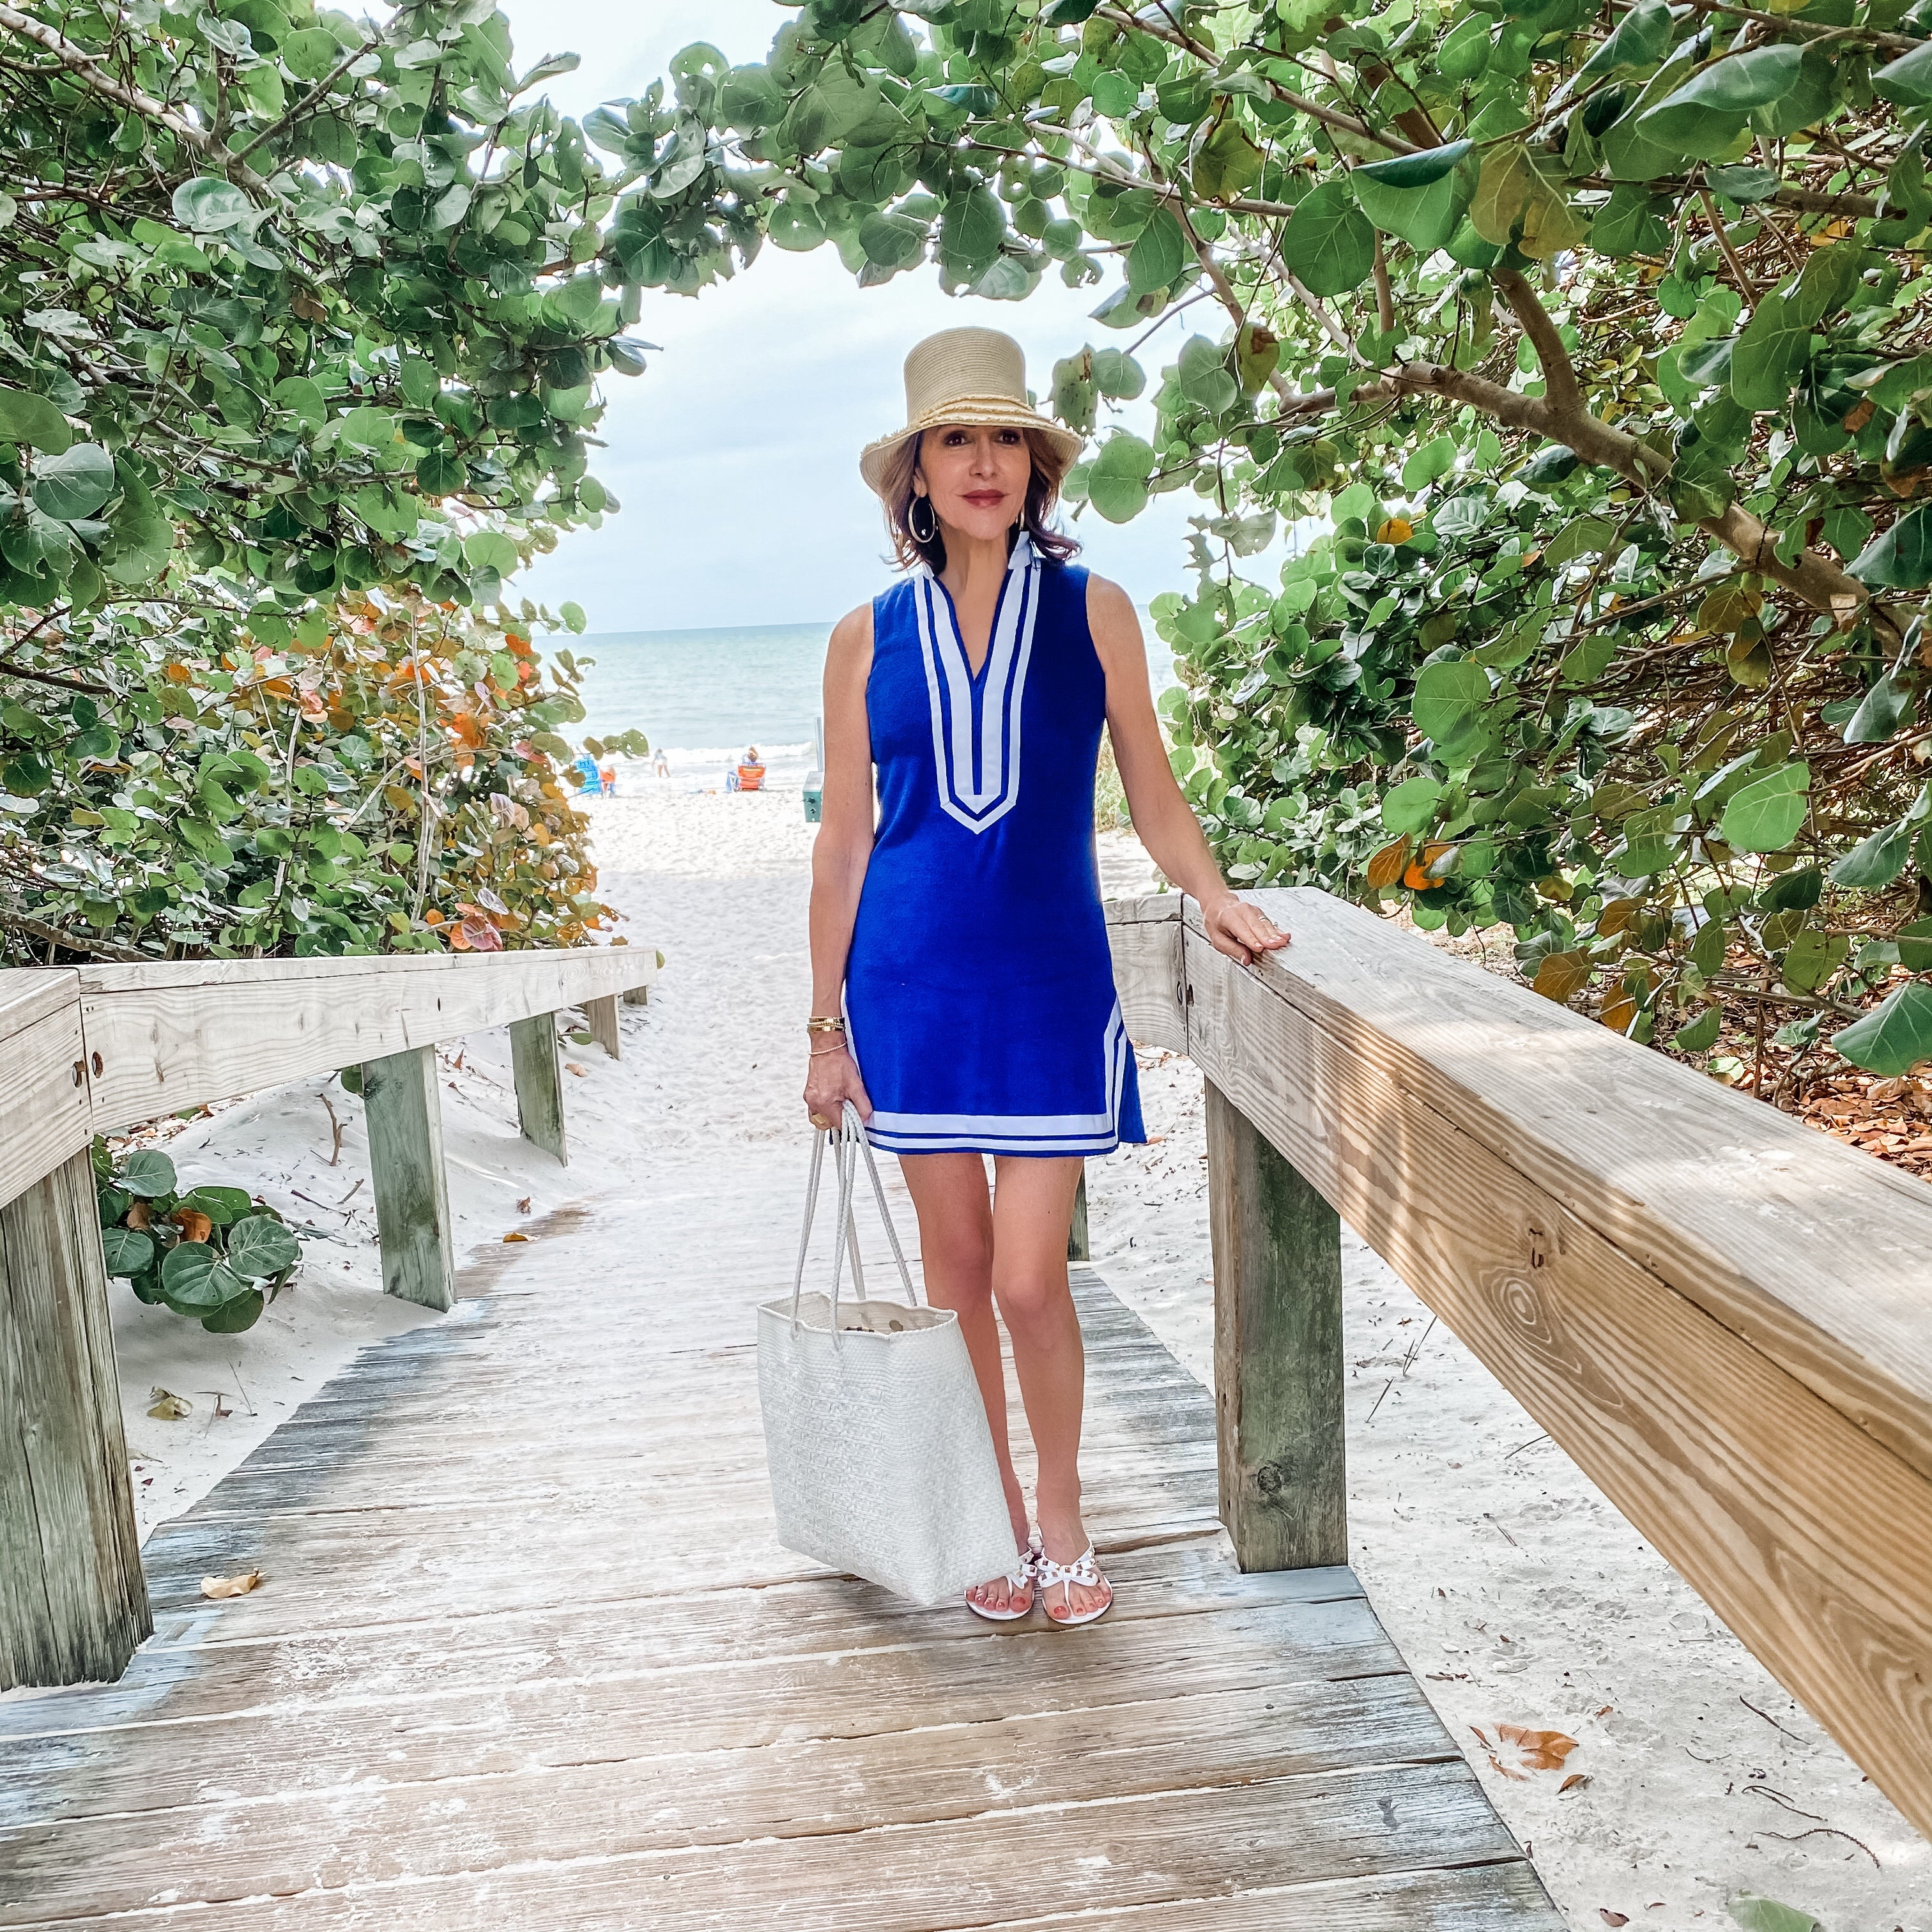 Woman on boardwalk to beach wearing Cabana Life Navy Sleeveless Terry Tunic